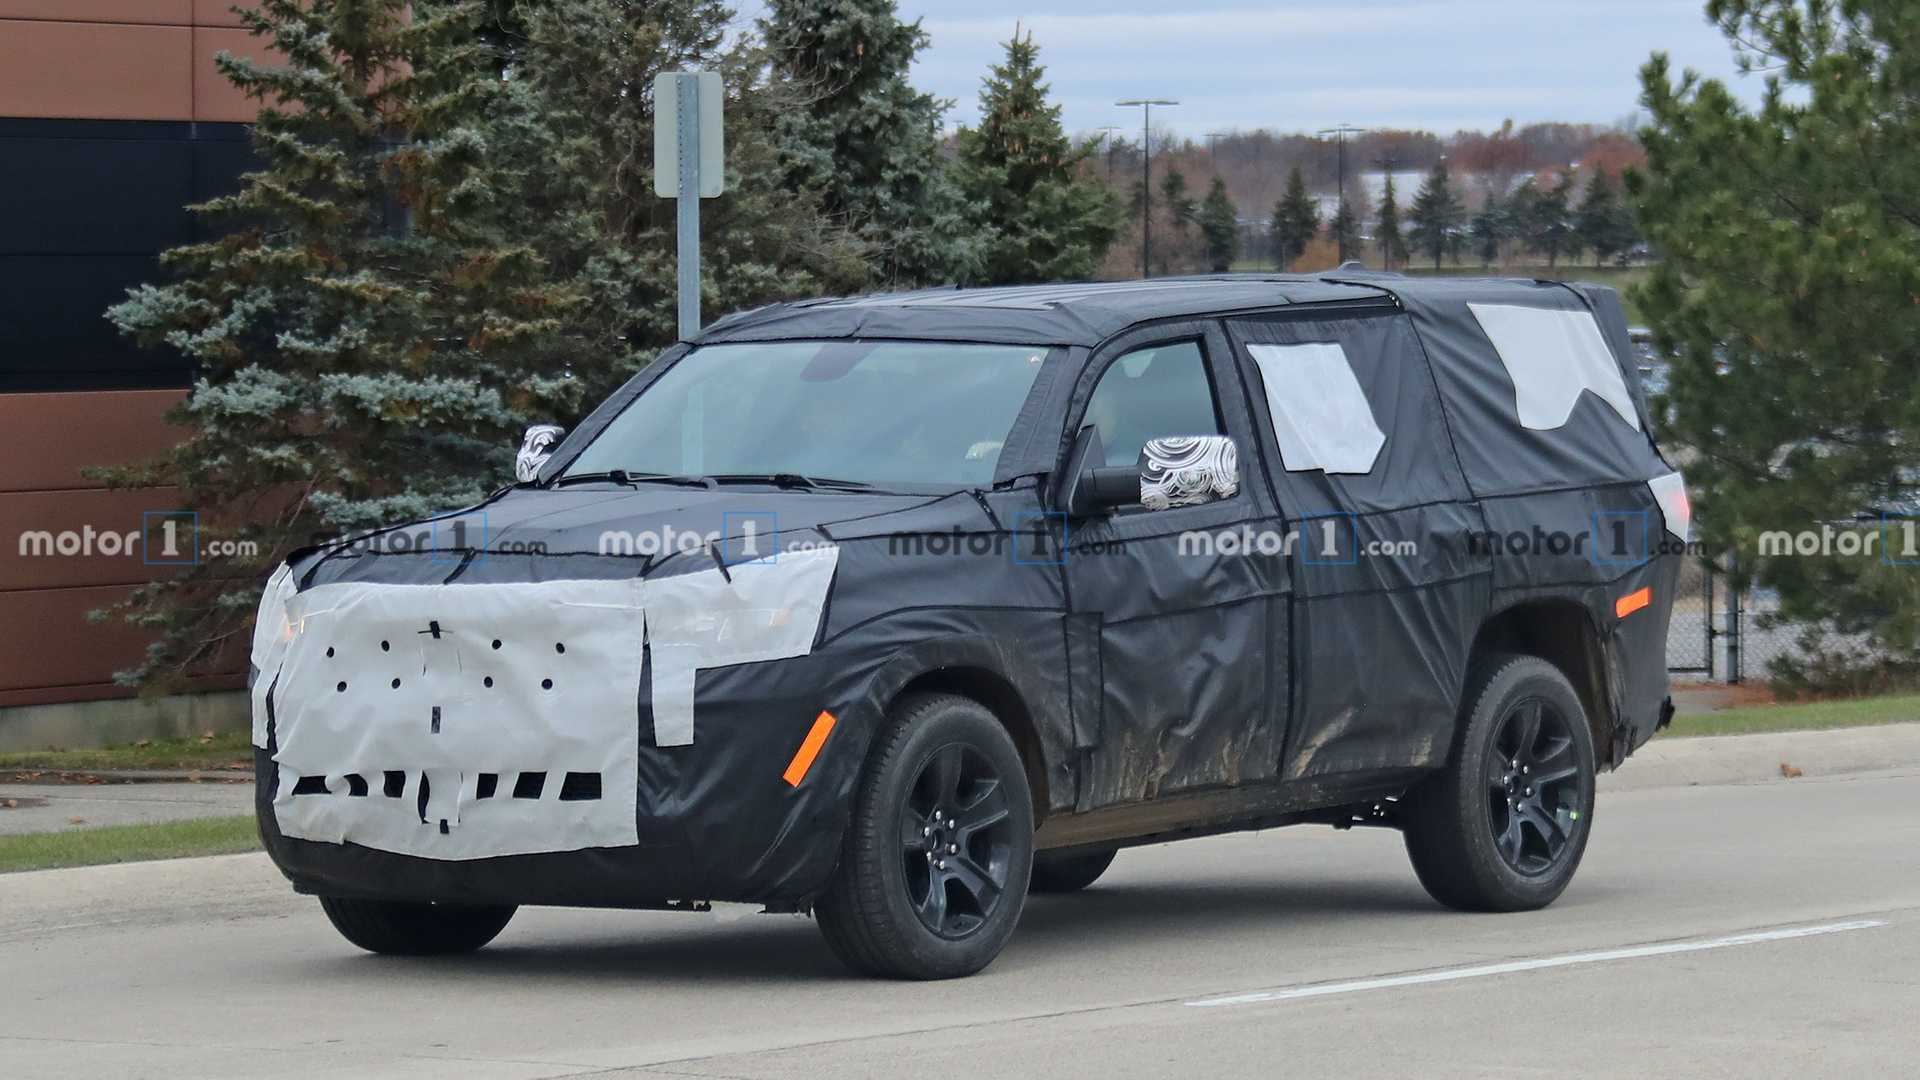 2020 Jeep Wagoneer Exterior and Interior